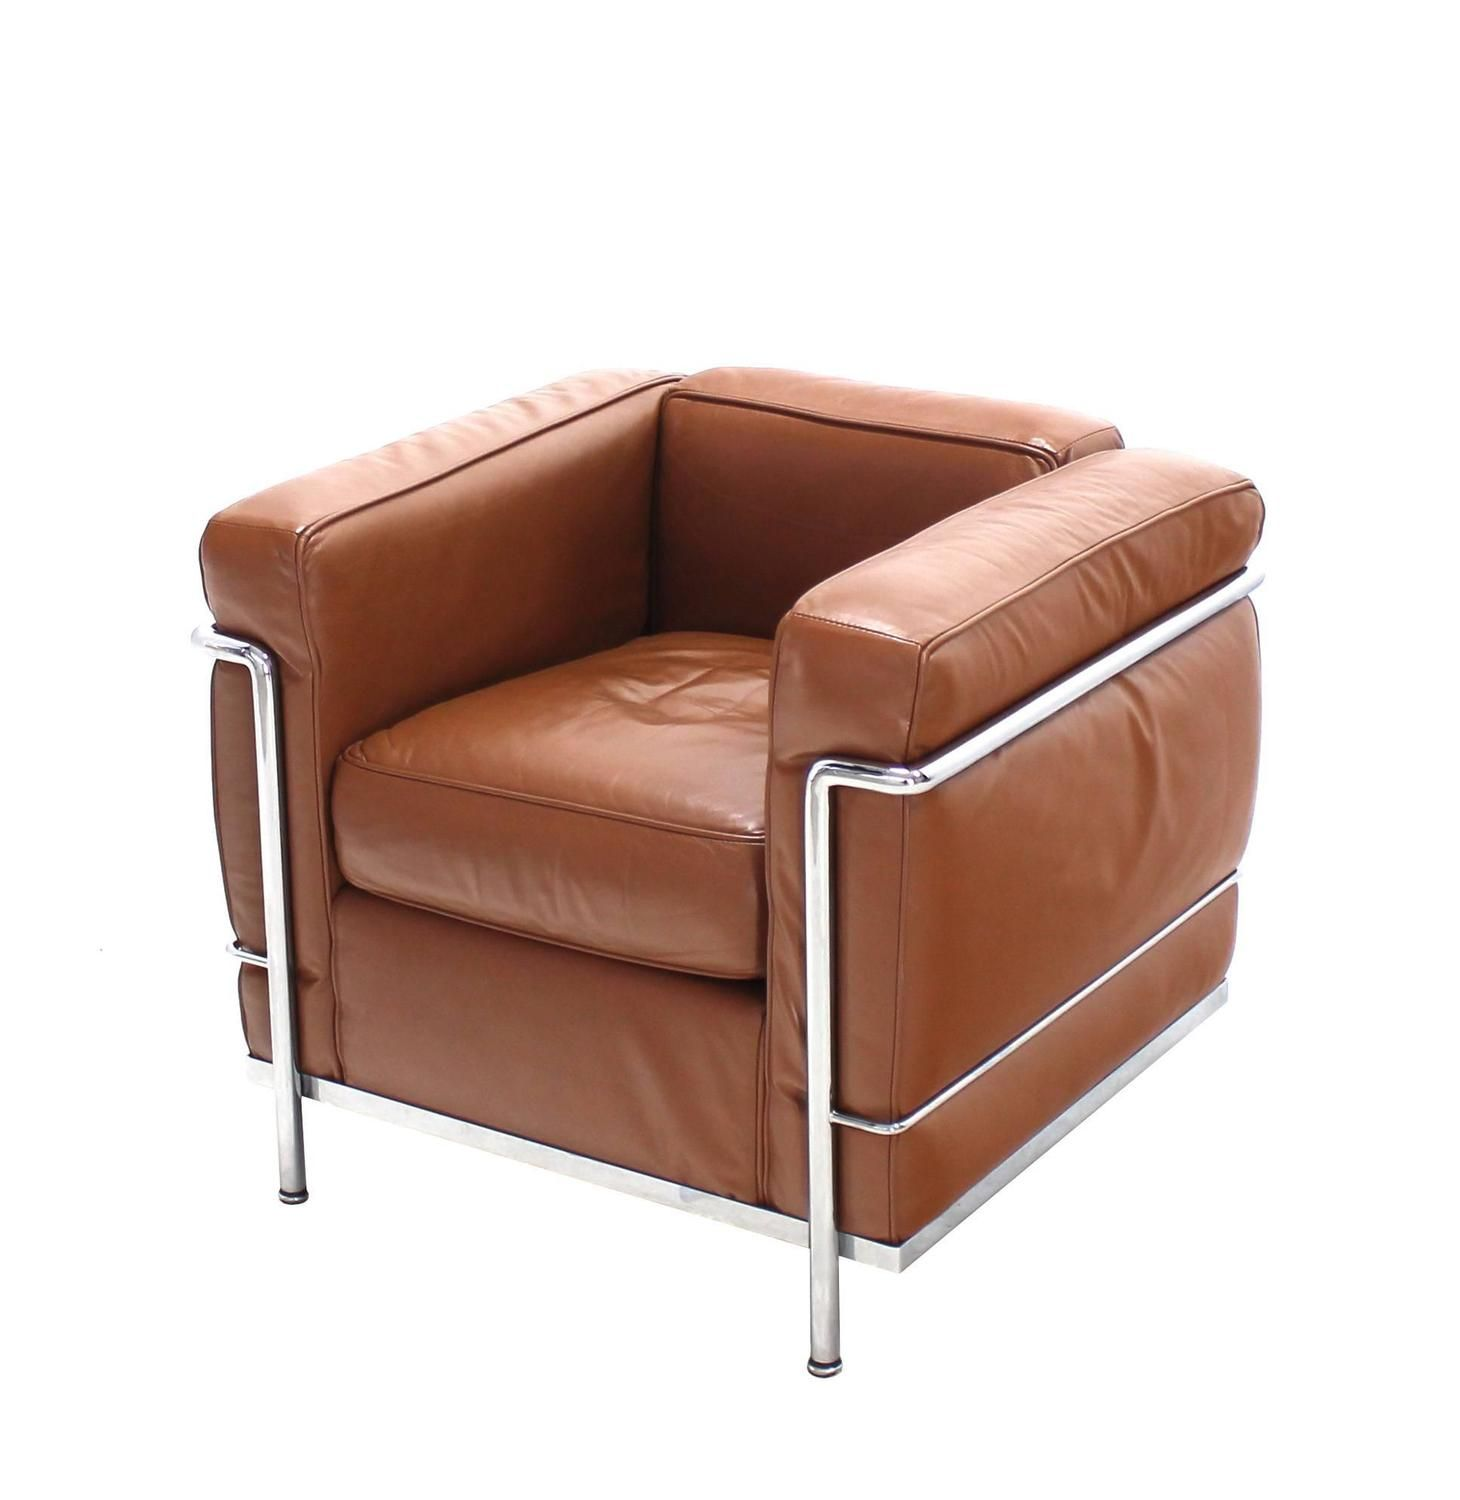 Le Corbusier Lc2 Cassina Brown Leather Pair Of Lounge Chairs From A Unique Collection Of Antique An Curvy Sofa Modern Lounge Chairs Mid Century Lounge Chairs